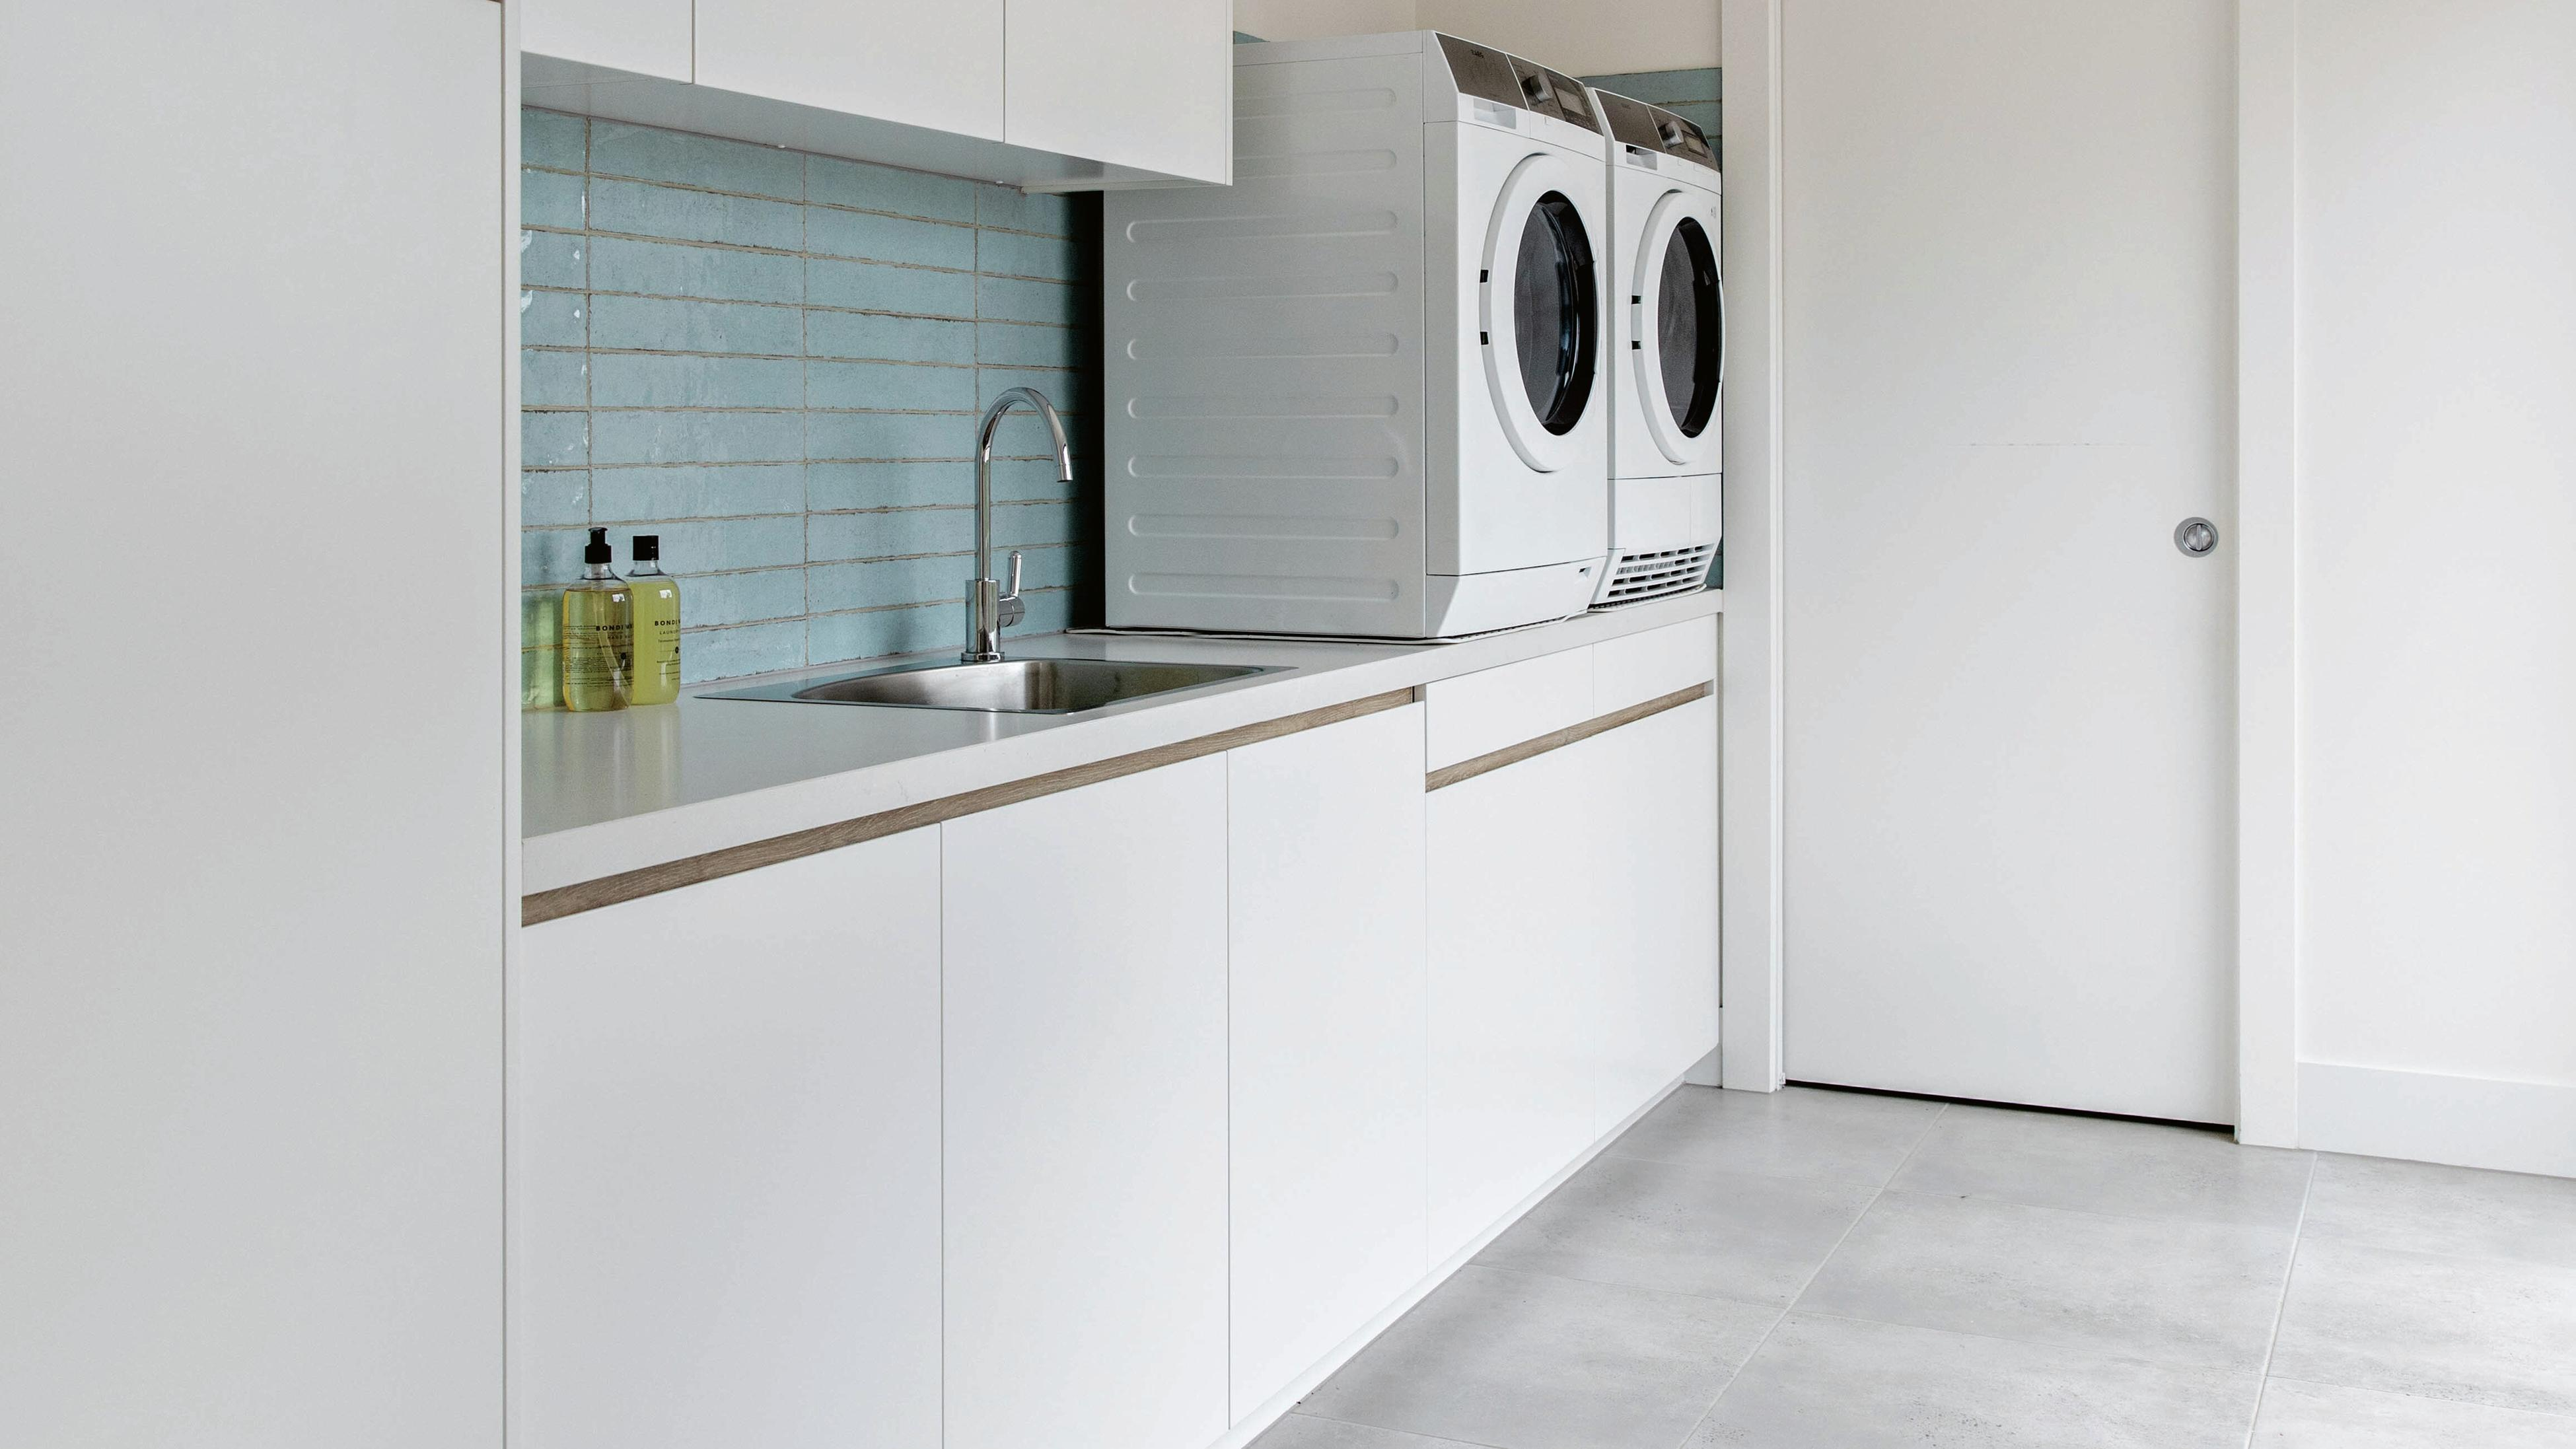 Laundry bench with washing machine and clothes dryer